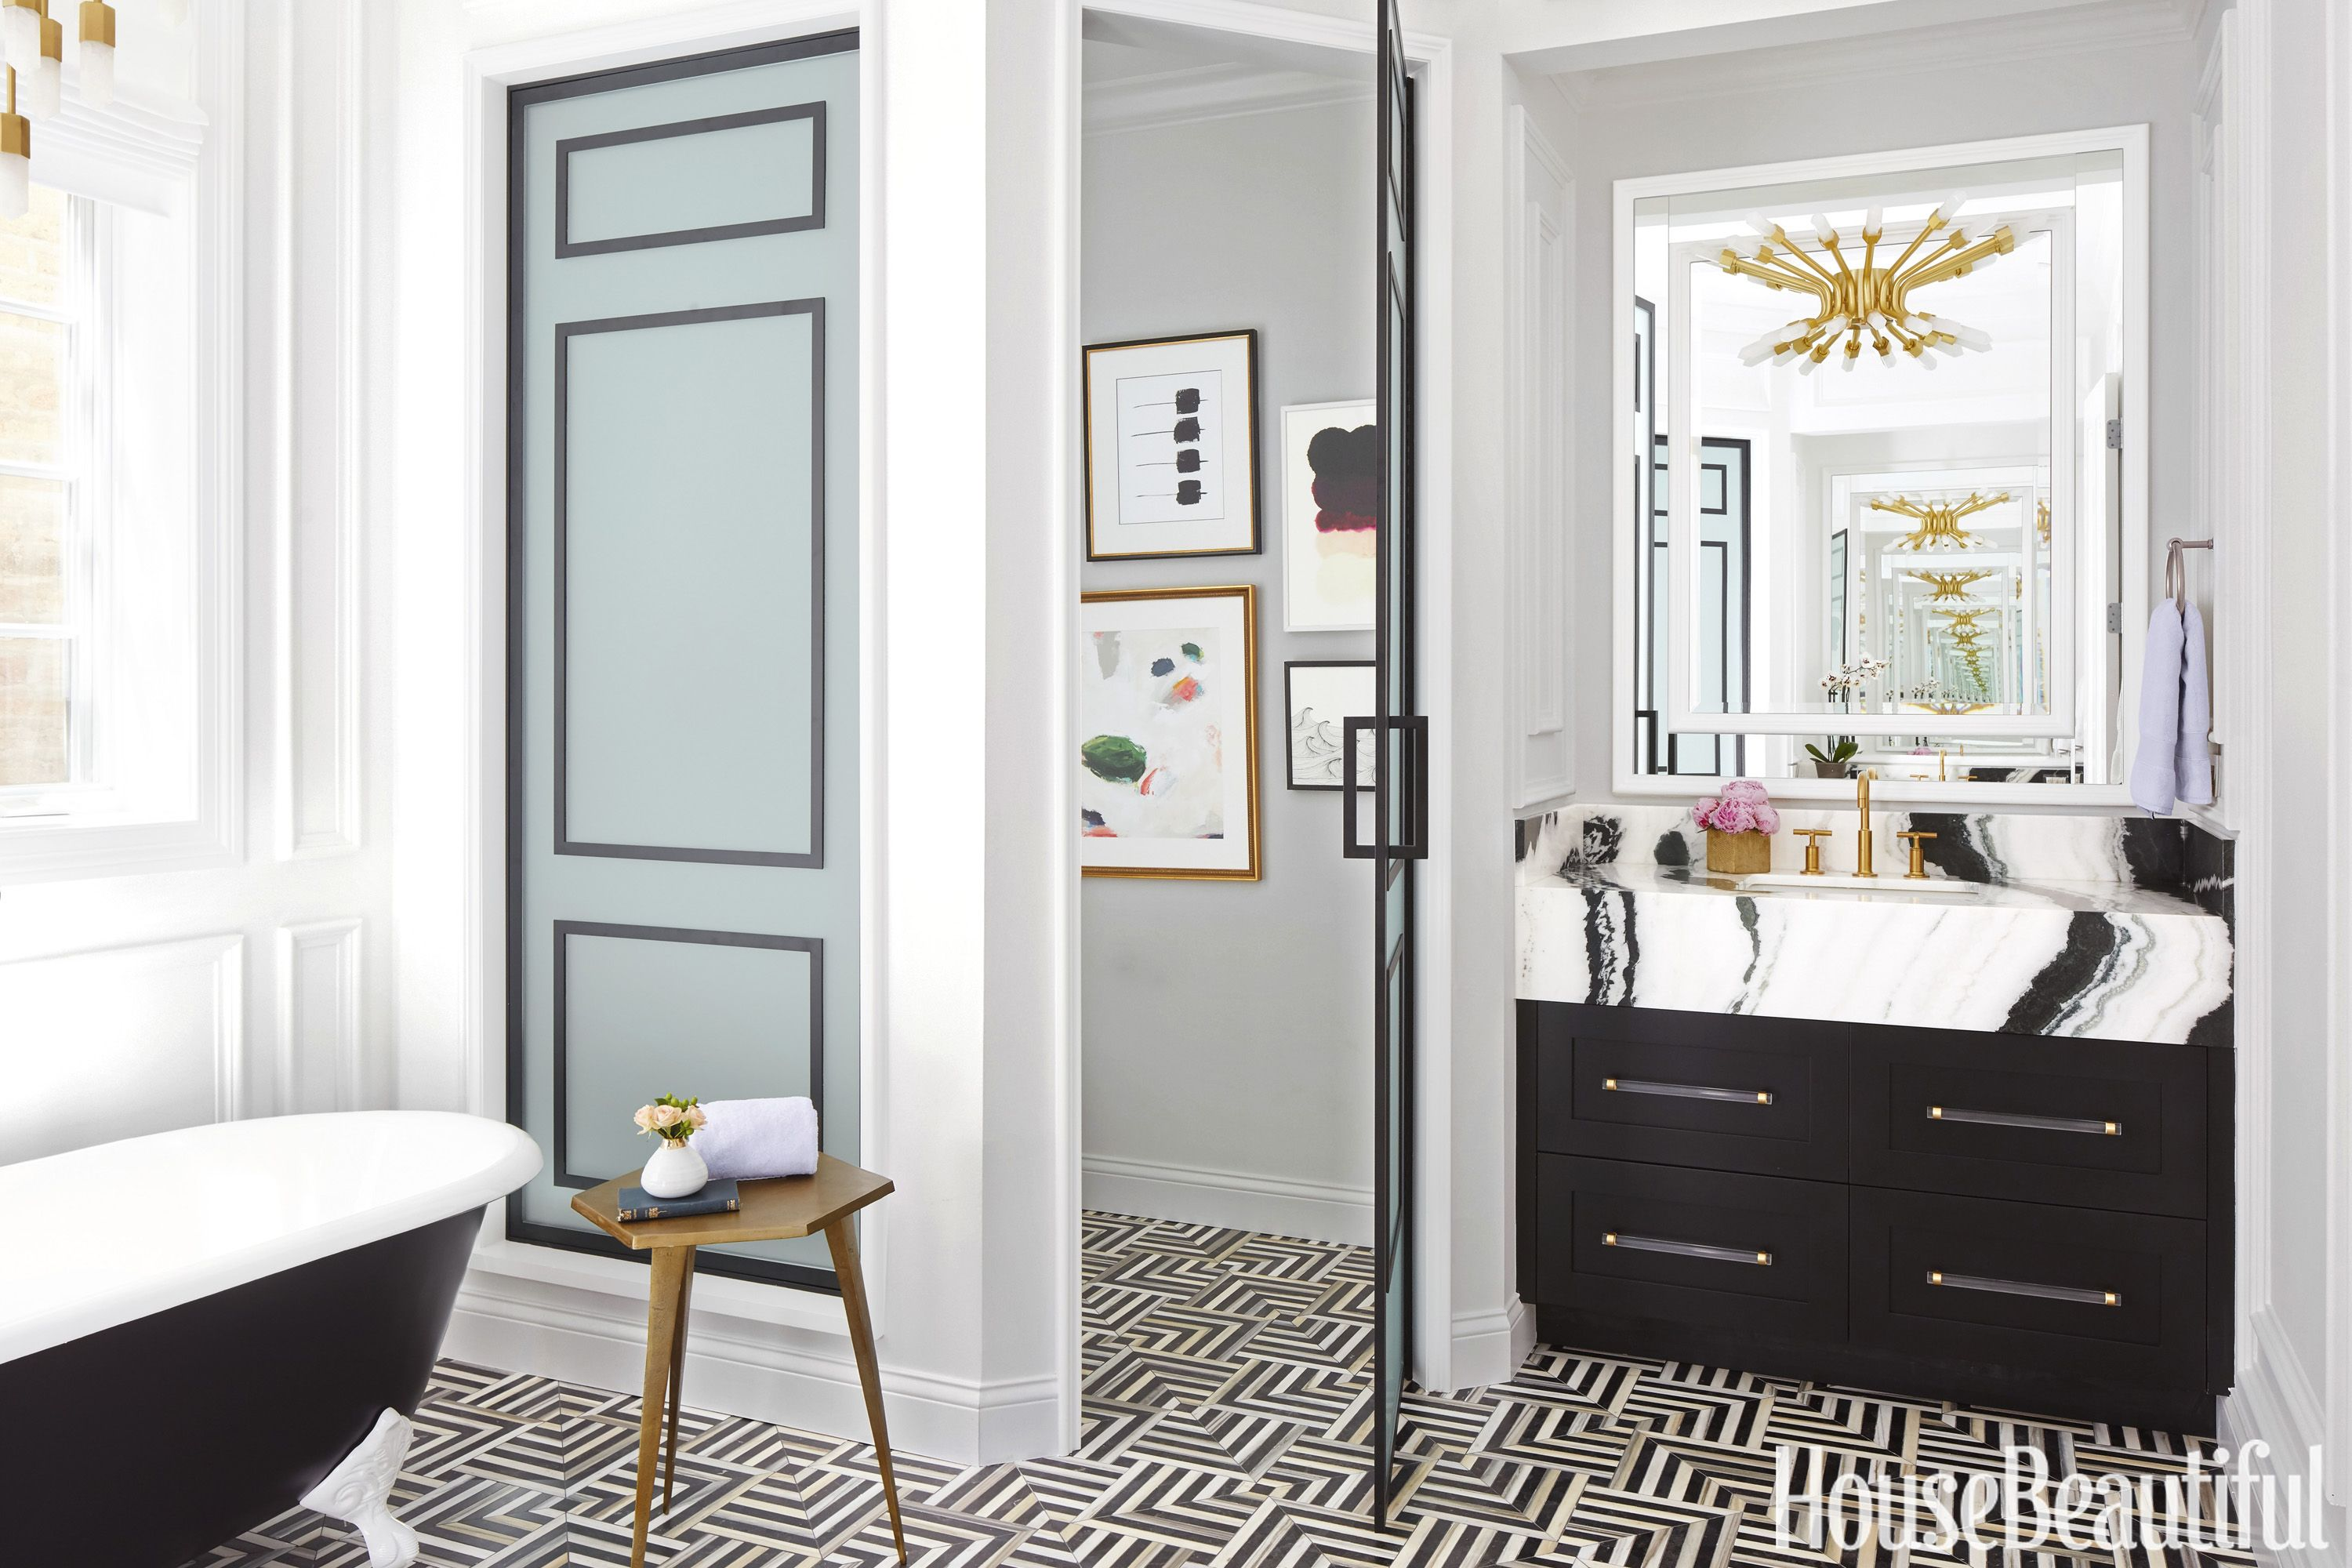 Suzann kletzien vanity in bathroom there is such a